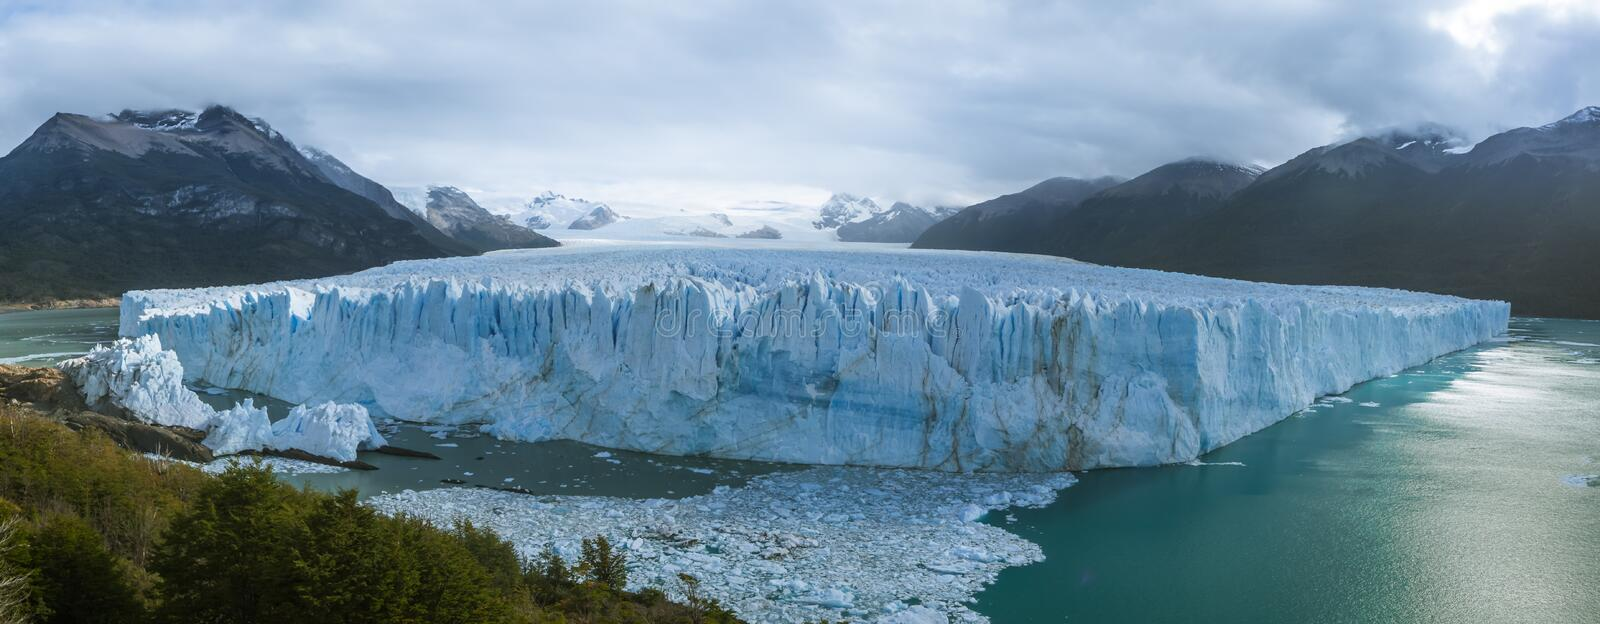 The Perito Moreno Glacier panoramic view. It is is a glacier located in the Los Glaciares National Park in Patagonia, Argentina. Calafate royalty free stock image